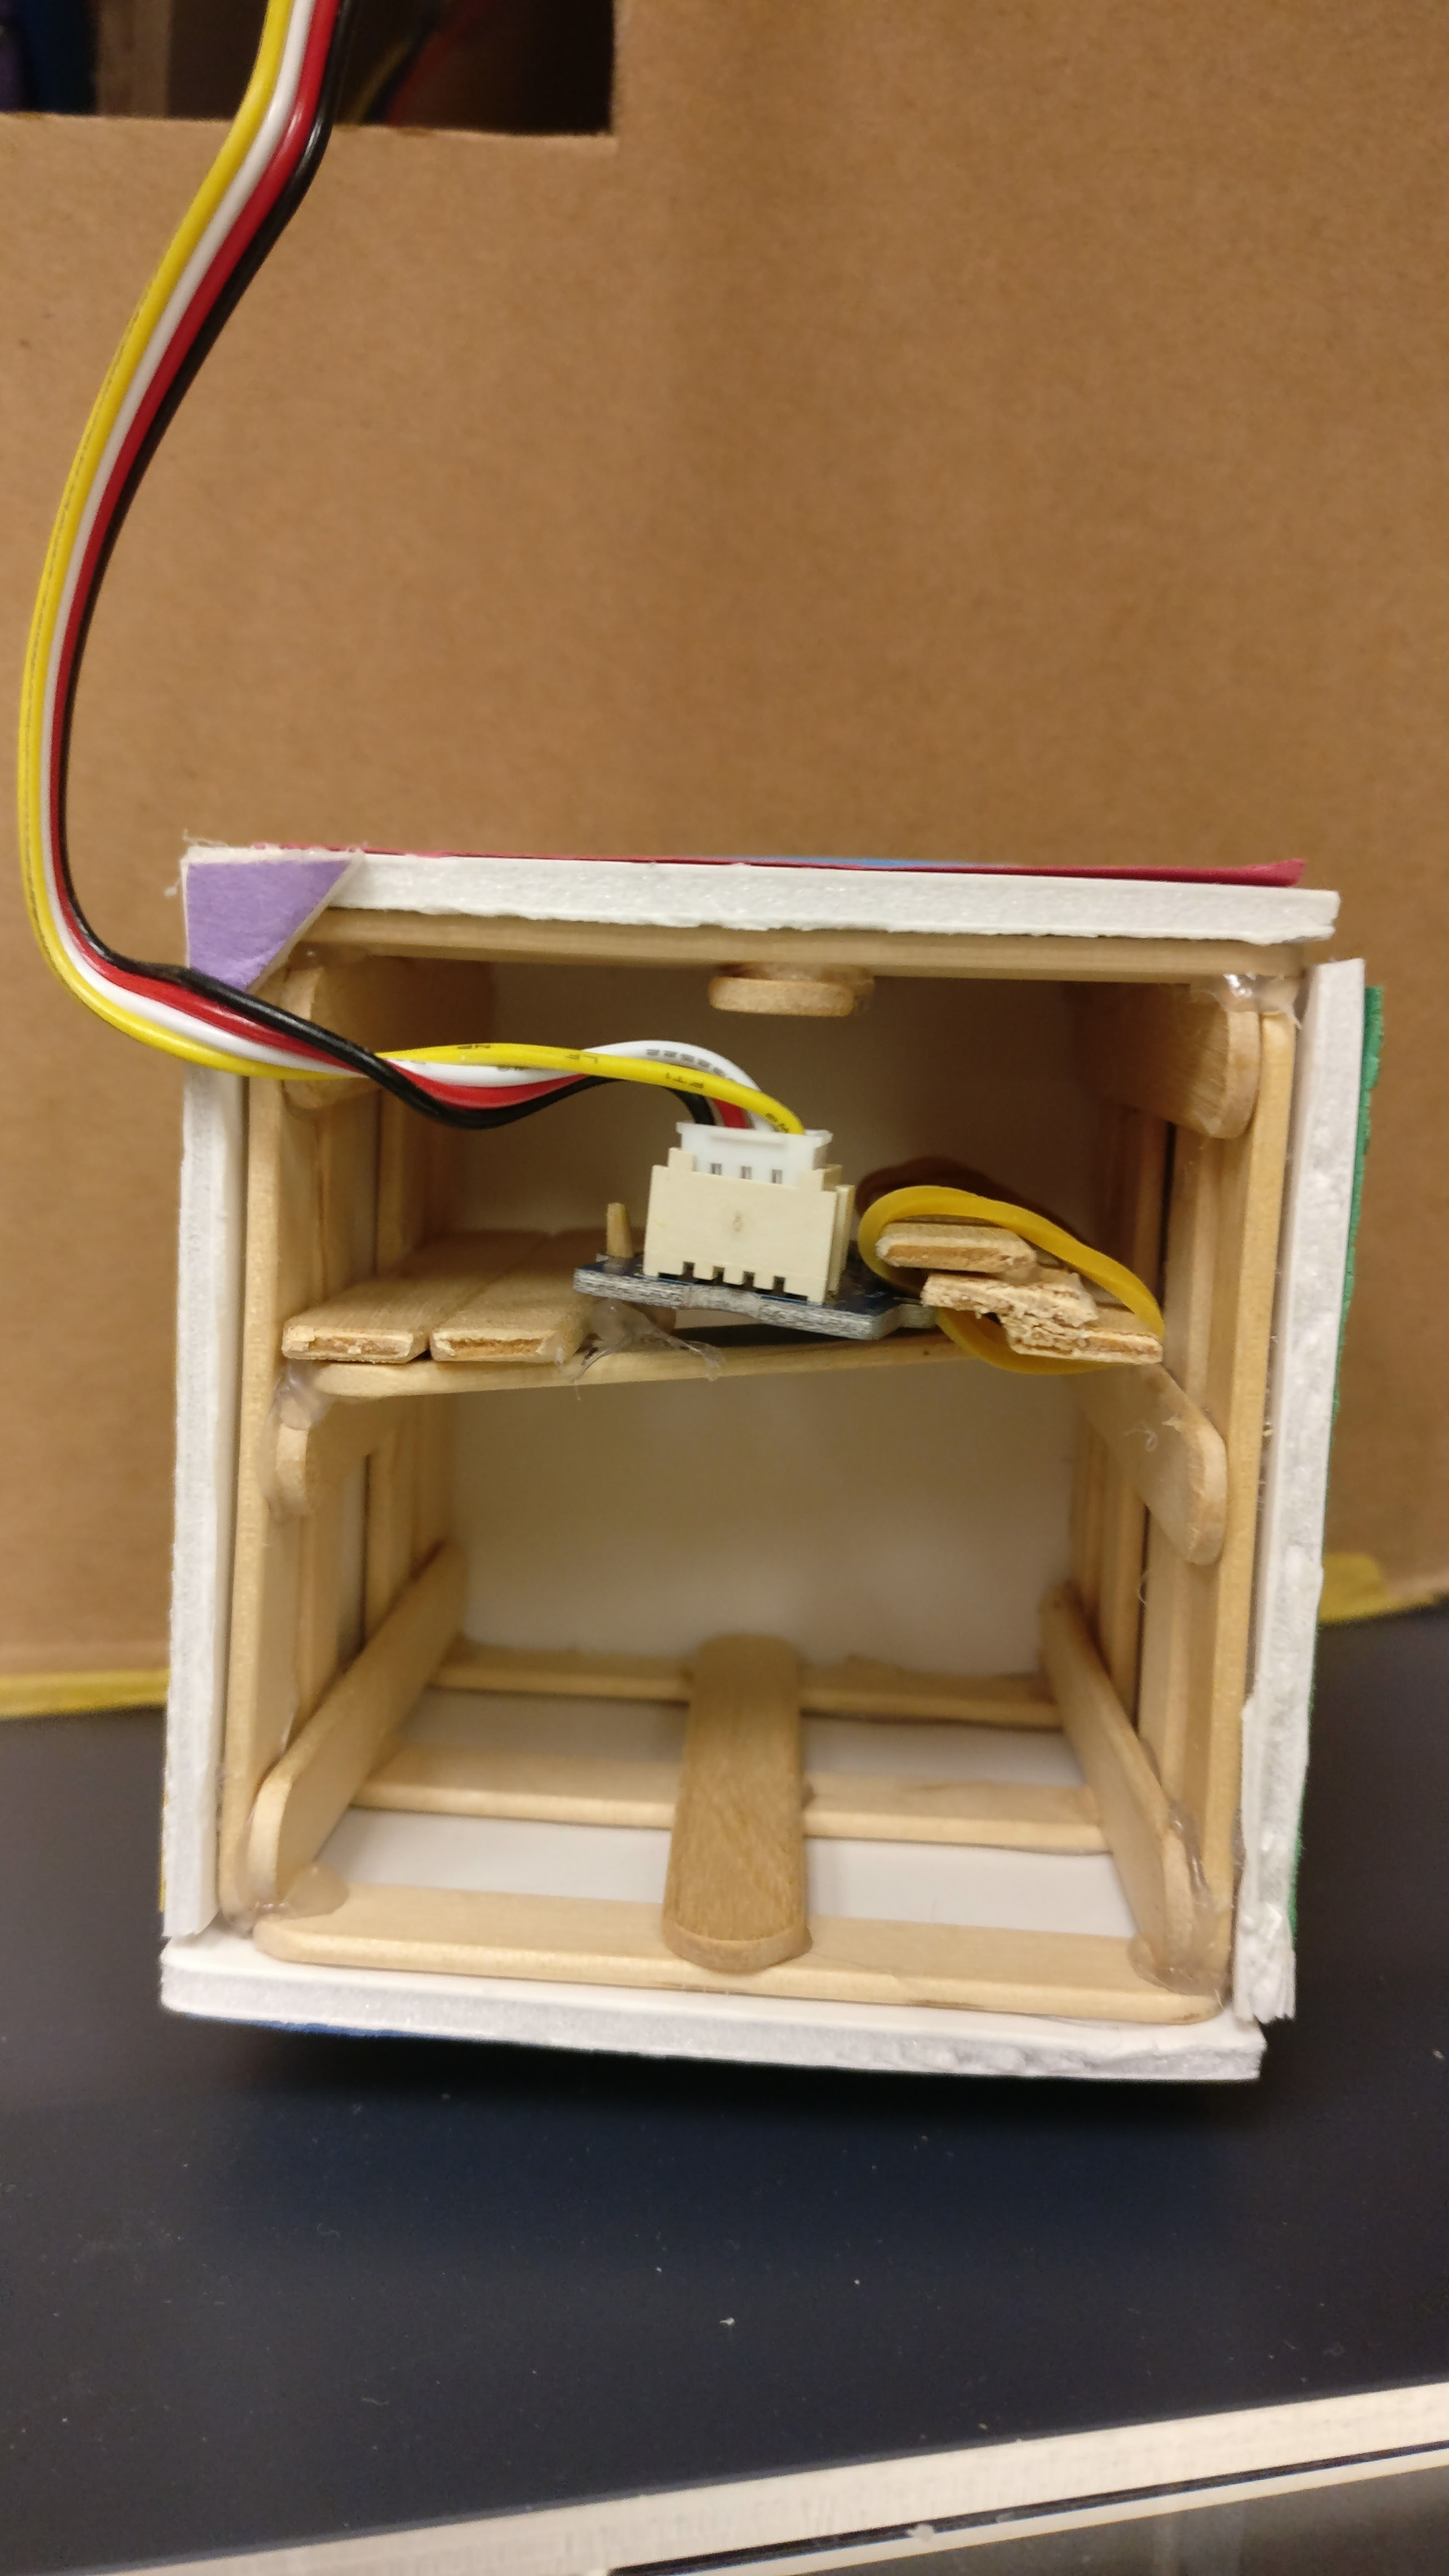 The selection cube was created with a Seeed (gyroscope) sensor. The Seeed sensor within the shelf selection cube